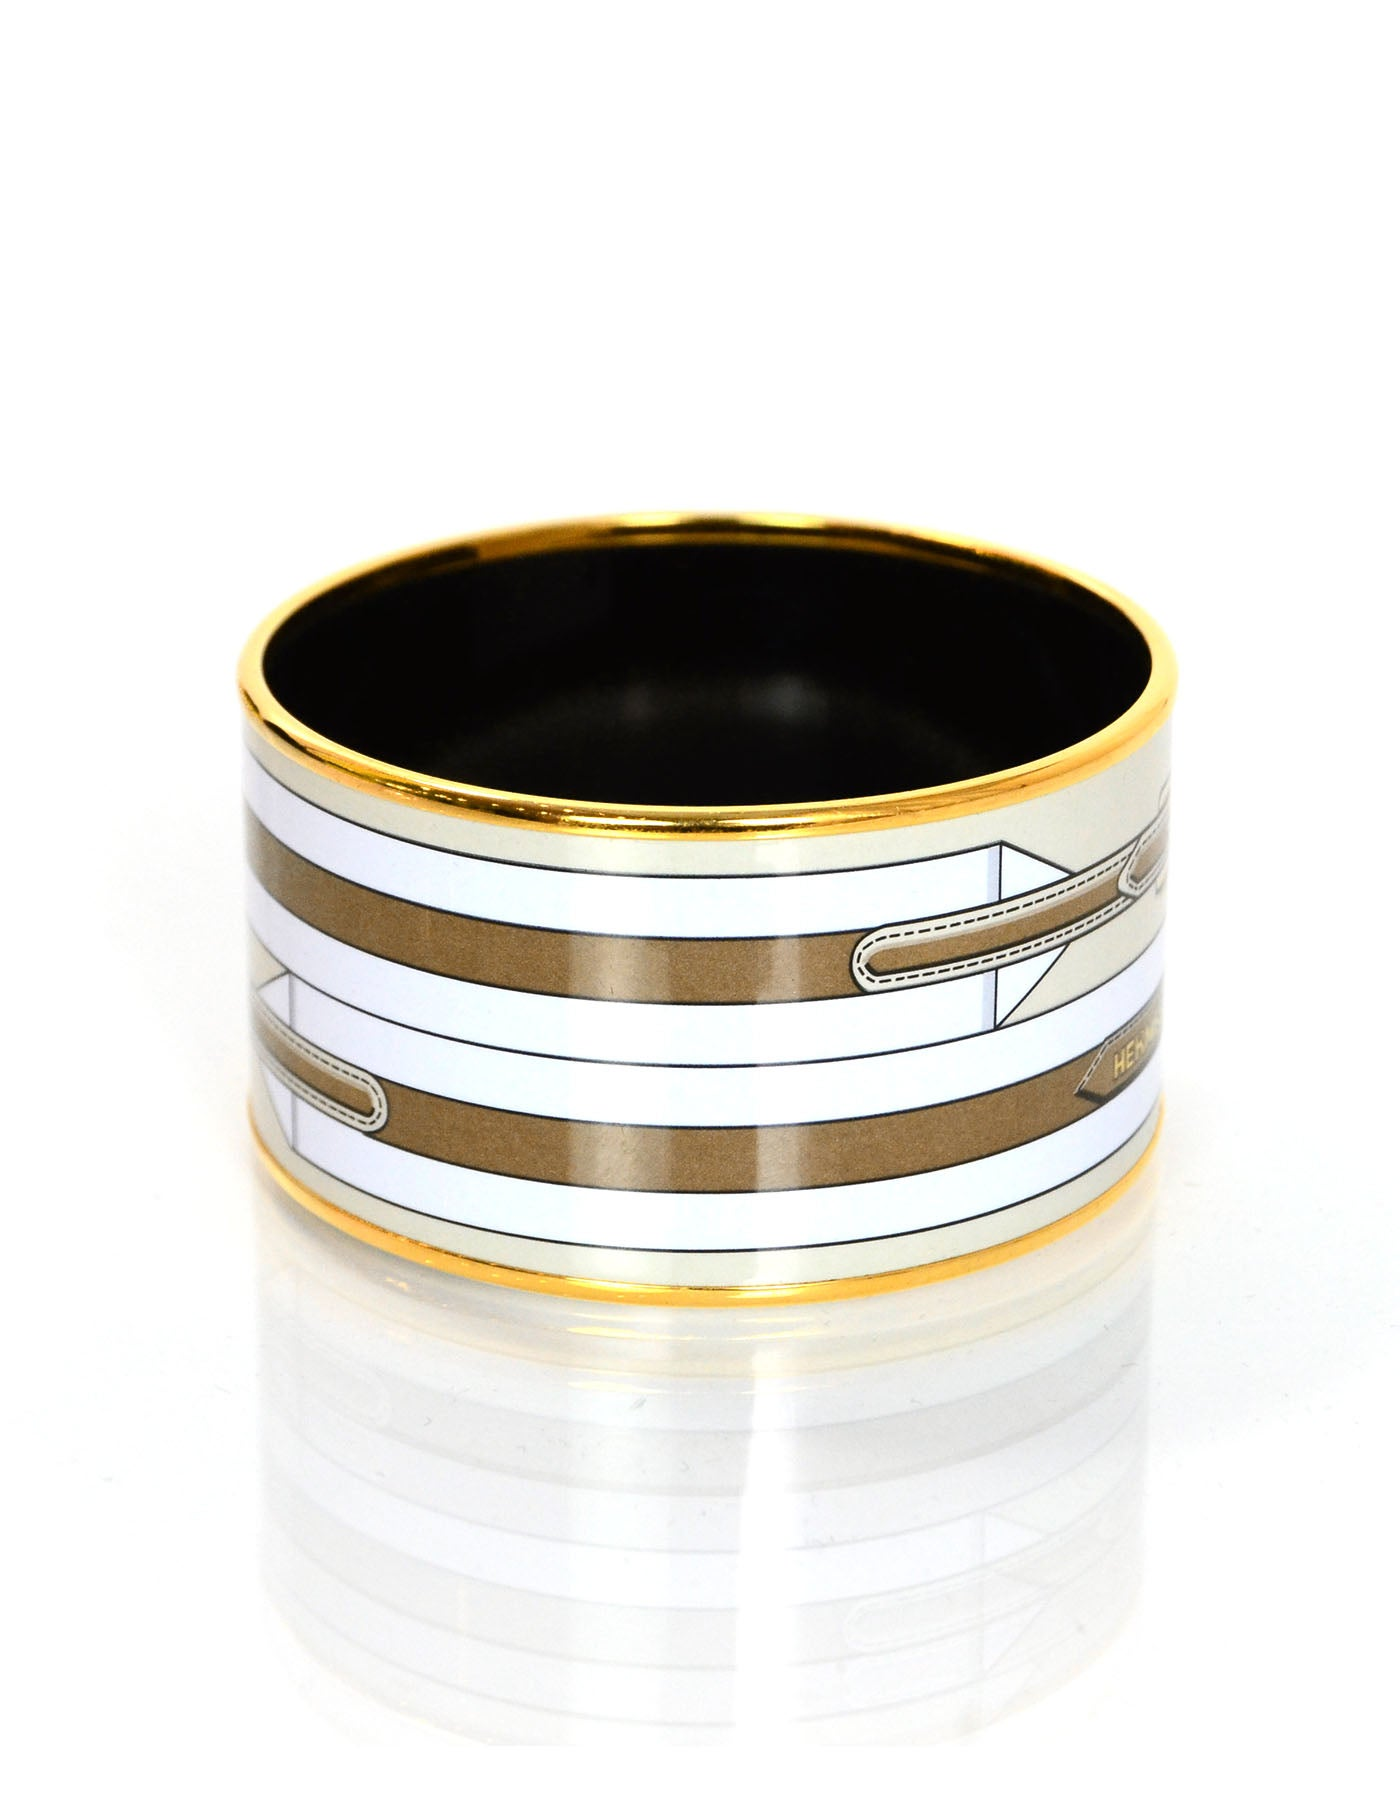 bracelet bangles bracelets width a woman bangle for mirror fashion before quality mm jewelry series from plated product top enamel gold